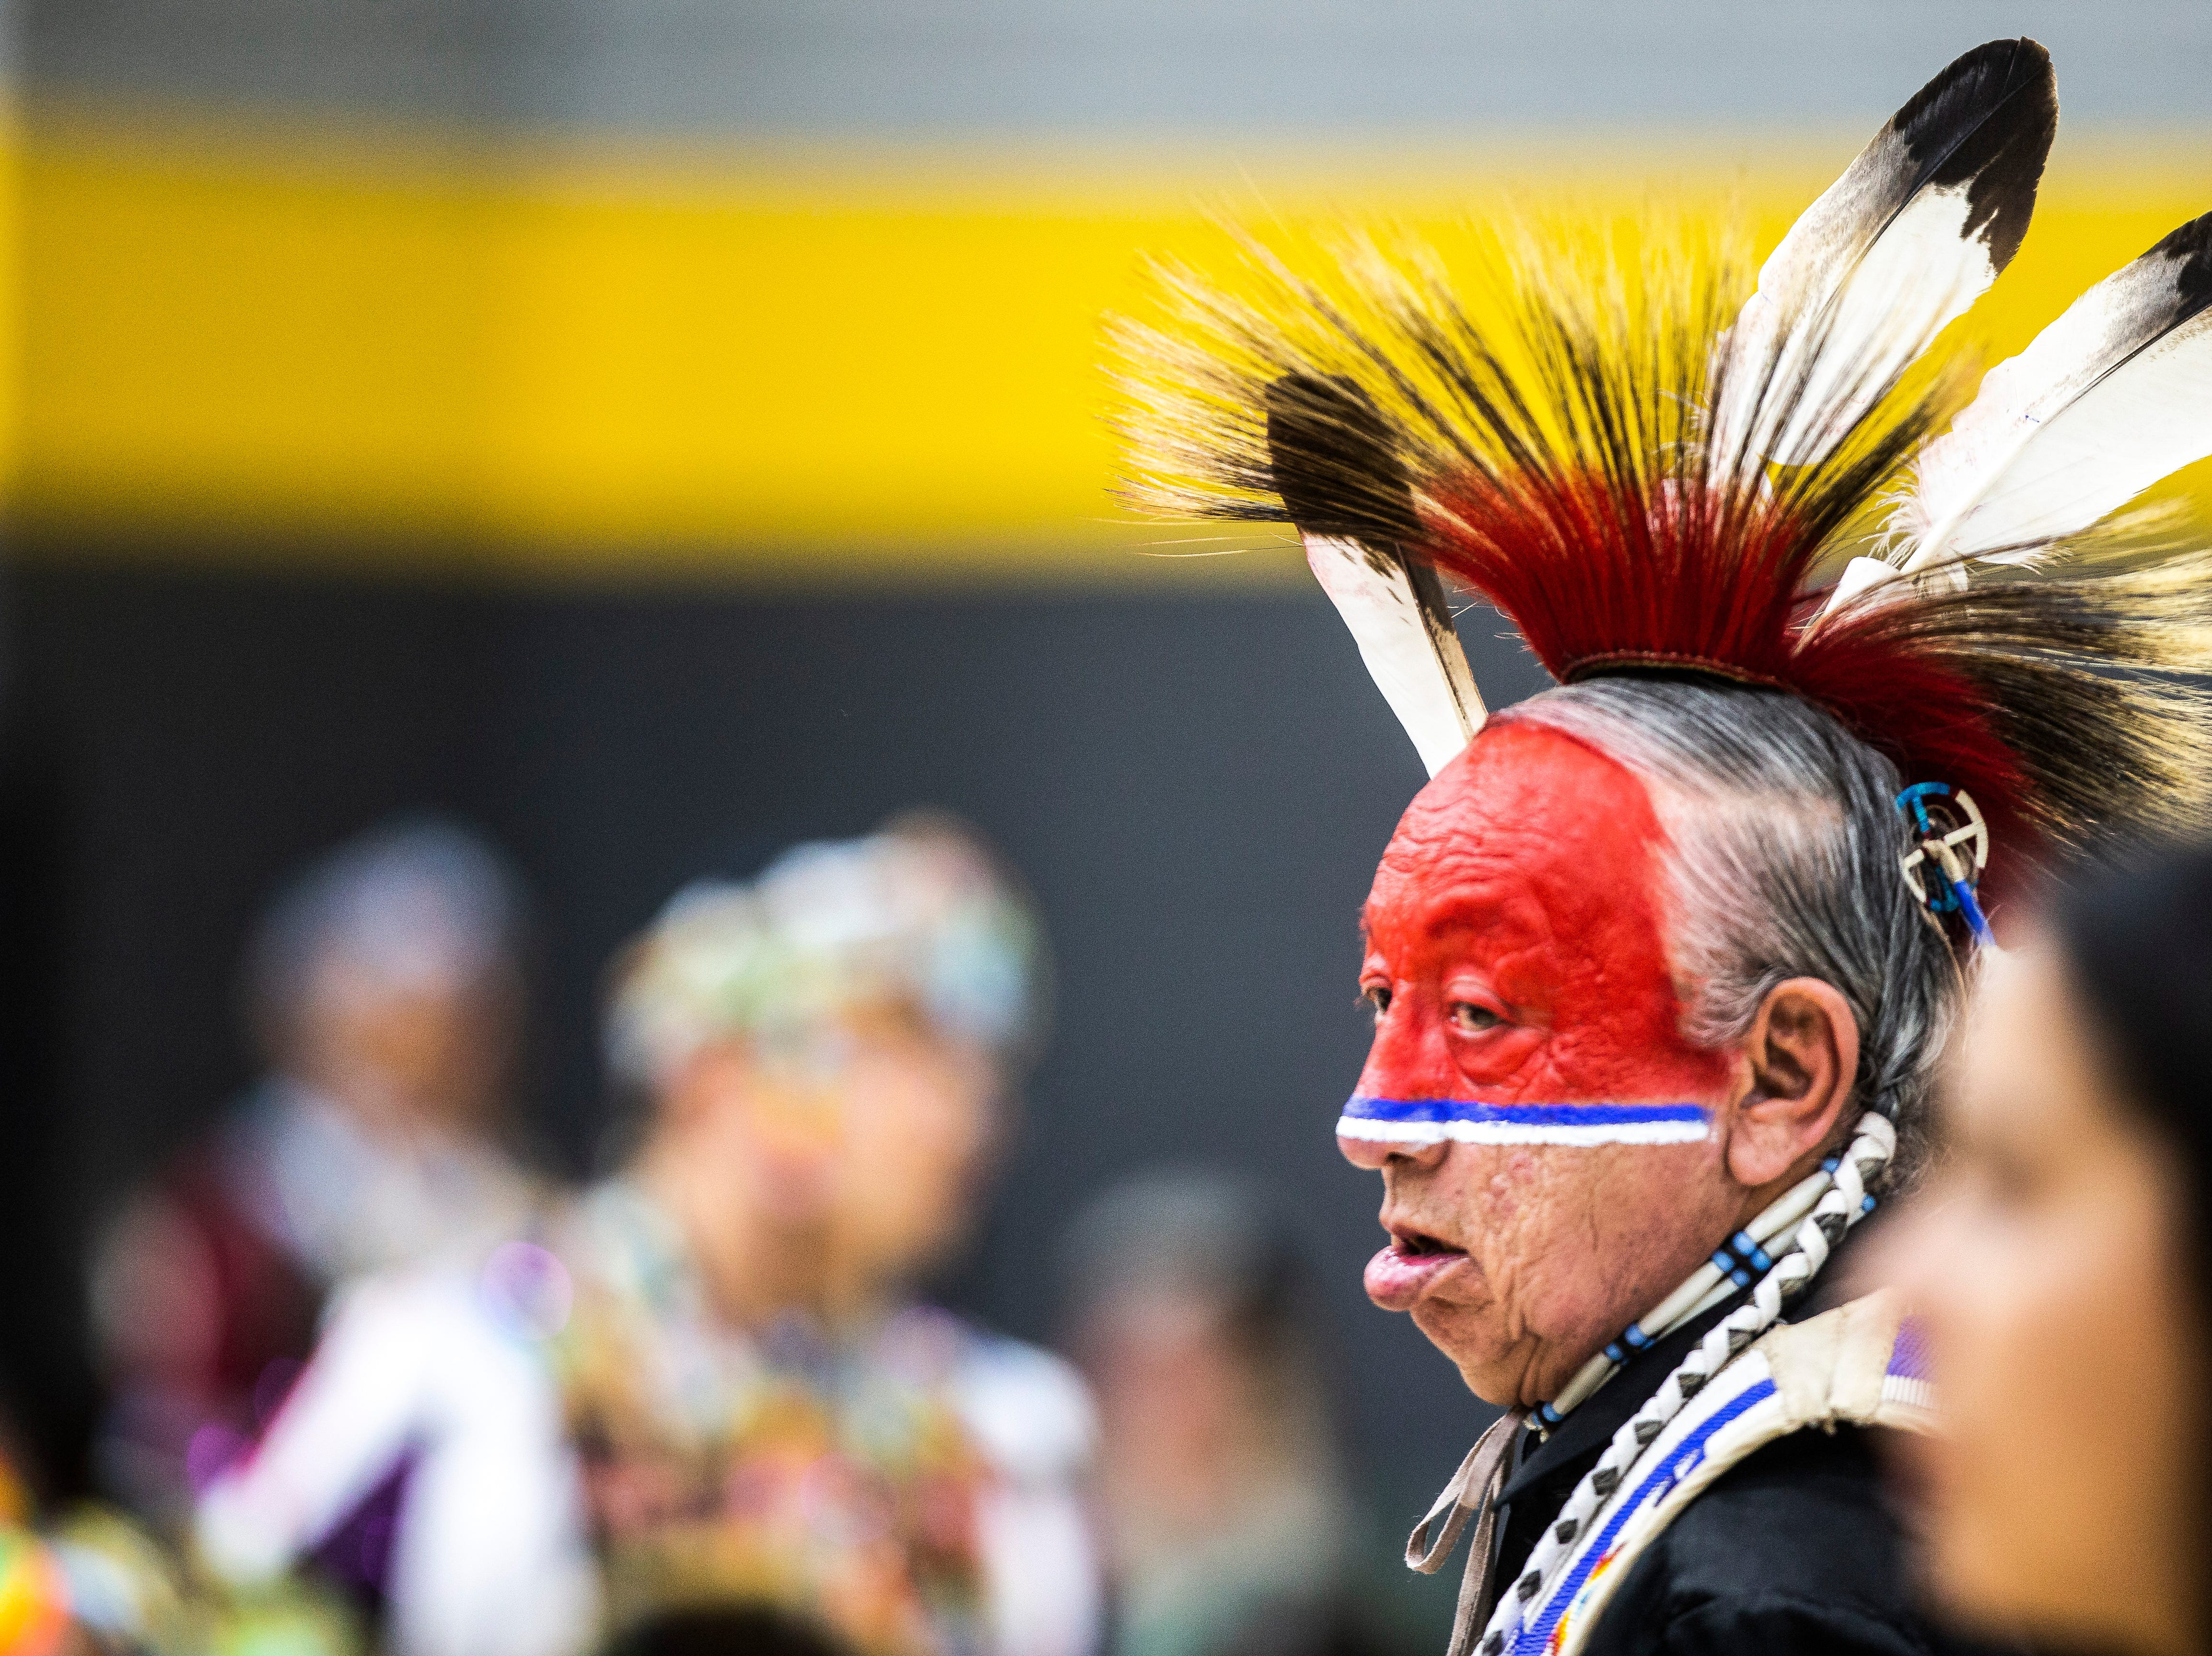 Terry Fiddler, of the Cheyanne River Sioux Tribe in Eagle Butte, South Dakota, dances during the 25th annual University of Iowa powwow, Saturday, April 20, 2019, at the Field House on the University of Iowa campus in Iowa City, Iowa.